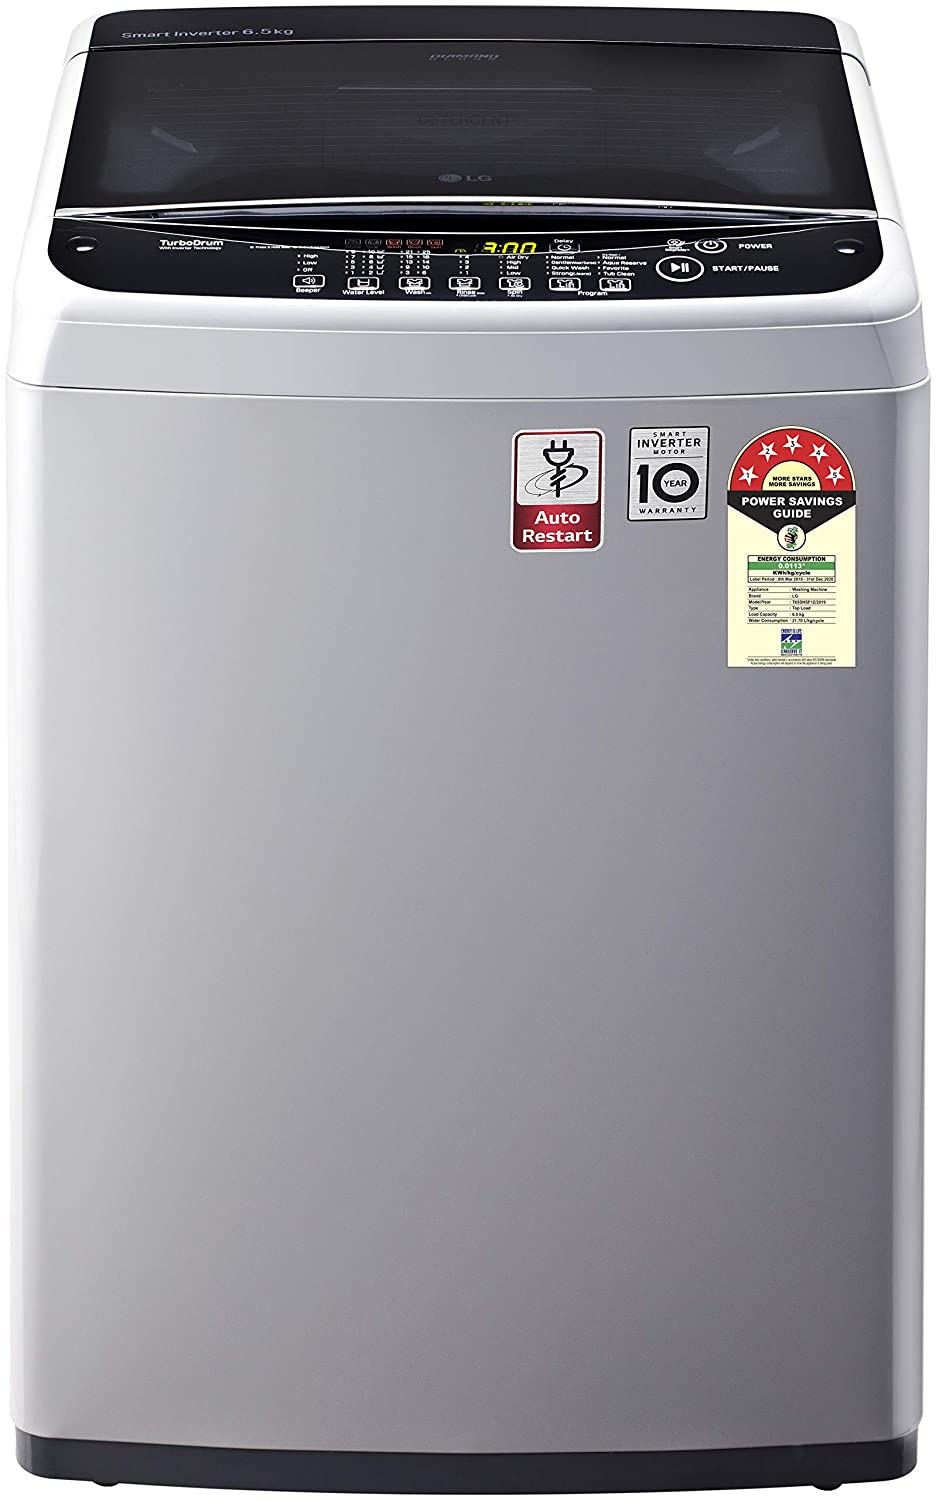 LG 6.5 Kg 5 Star Smart Inverter Fully-Automatic Top Loading Washing Machine